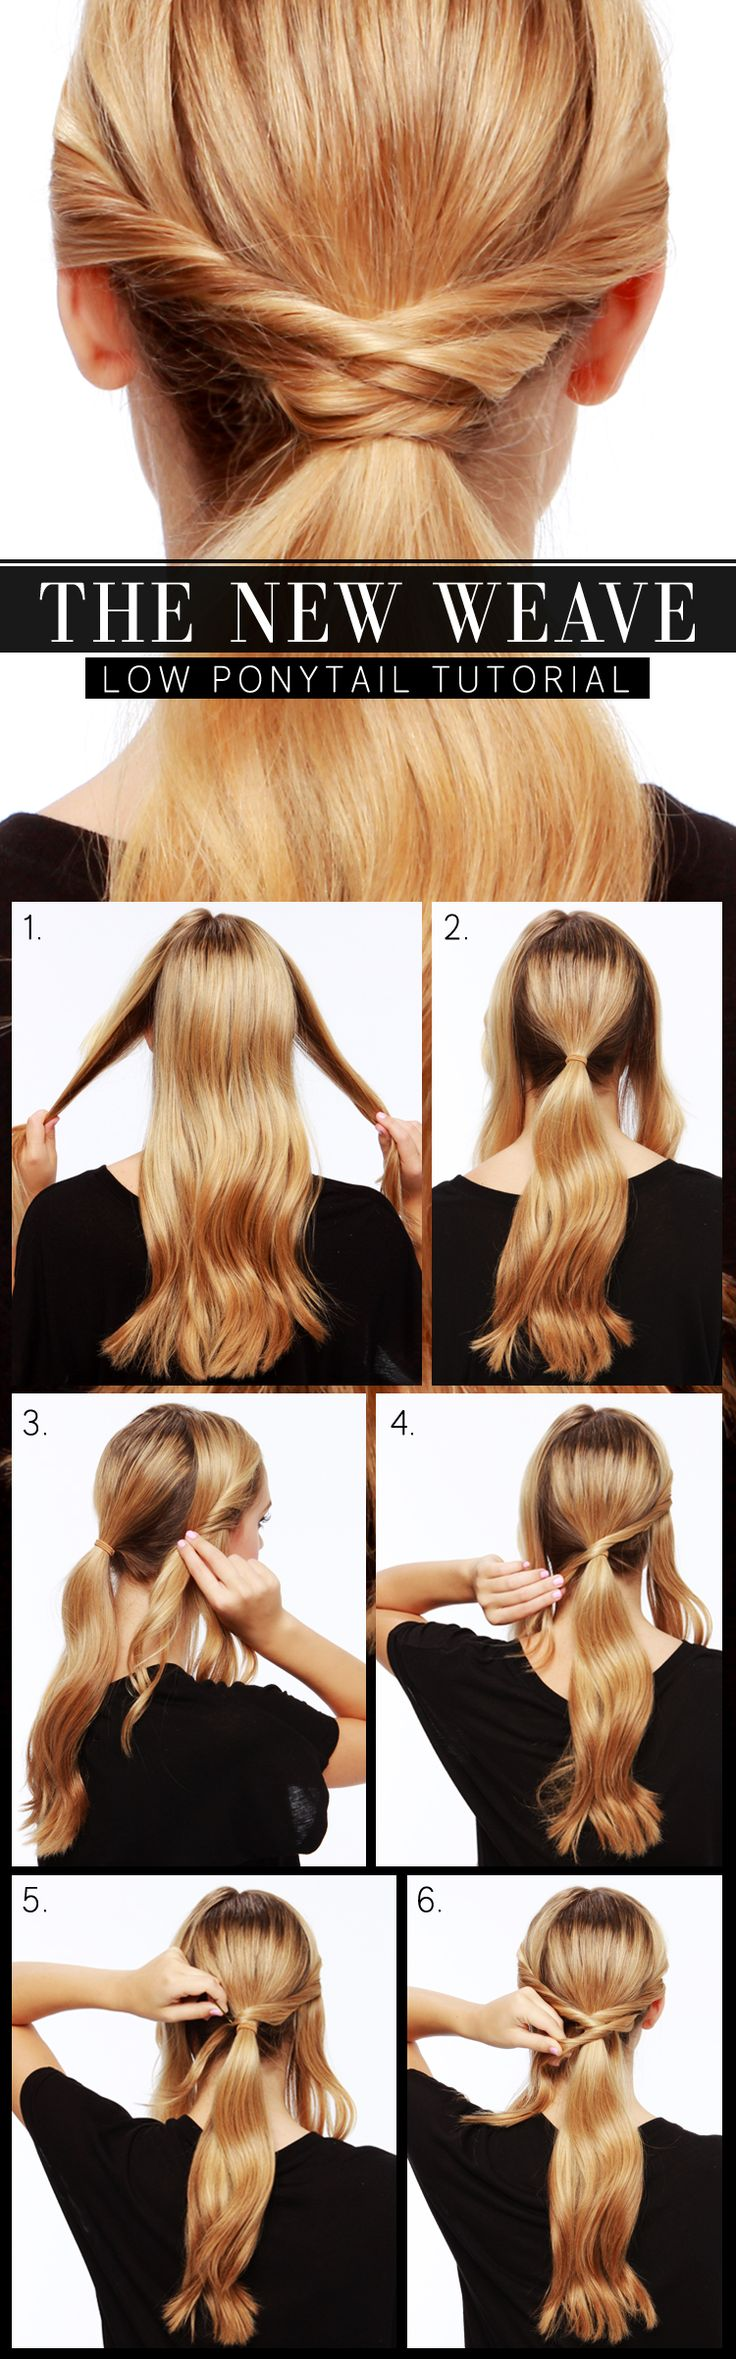 Our New Weave Low Ponytail Tutorial is the perfect way to pump up a passé pony. Follow the tutorial to weave your way to a new darling hairdo!